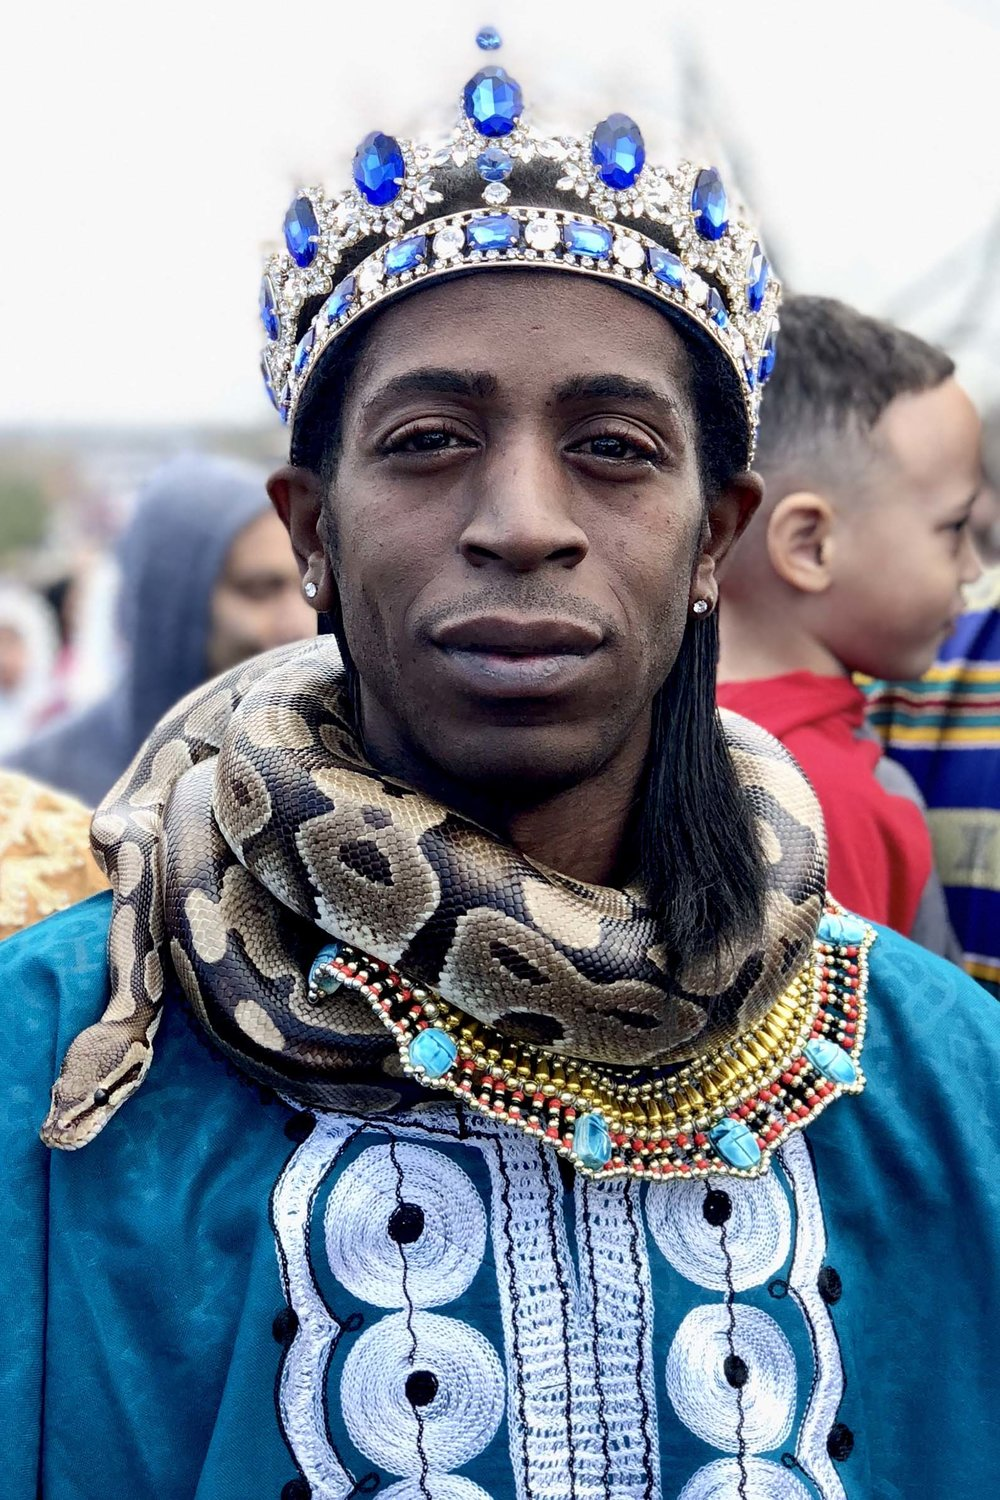 Surrounded by family, Pharaoh Clark and his pet snake, also named Pharaoh, participate in the 50th annual Martin Luther King Day march in San Antonio, Texas, on January 15, 2018.